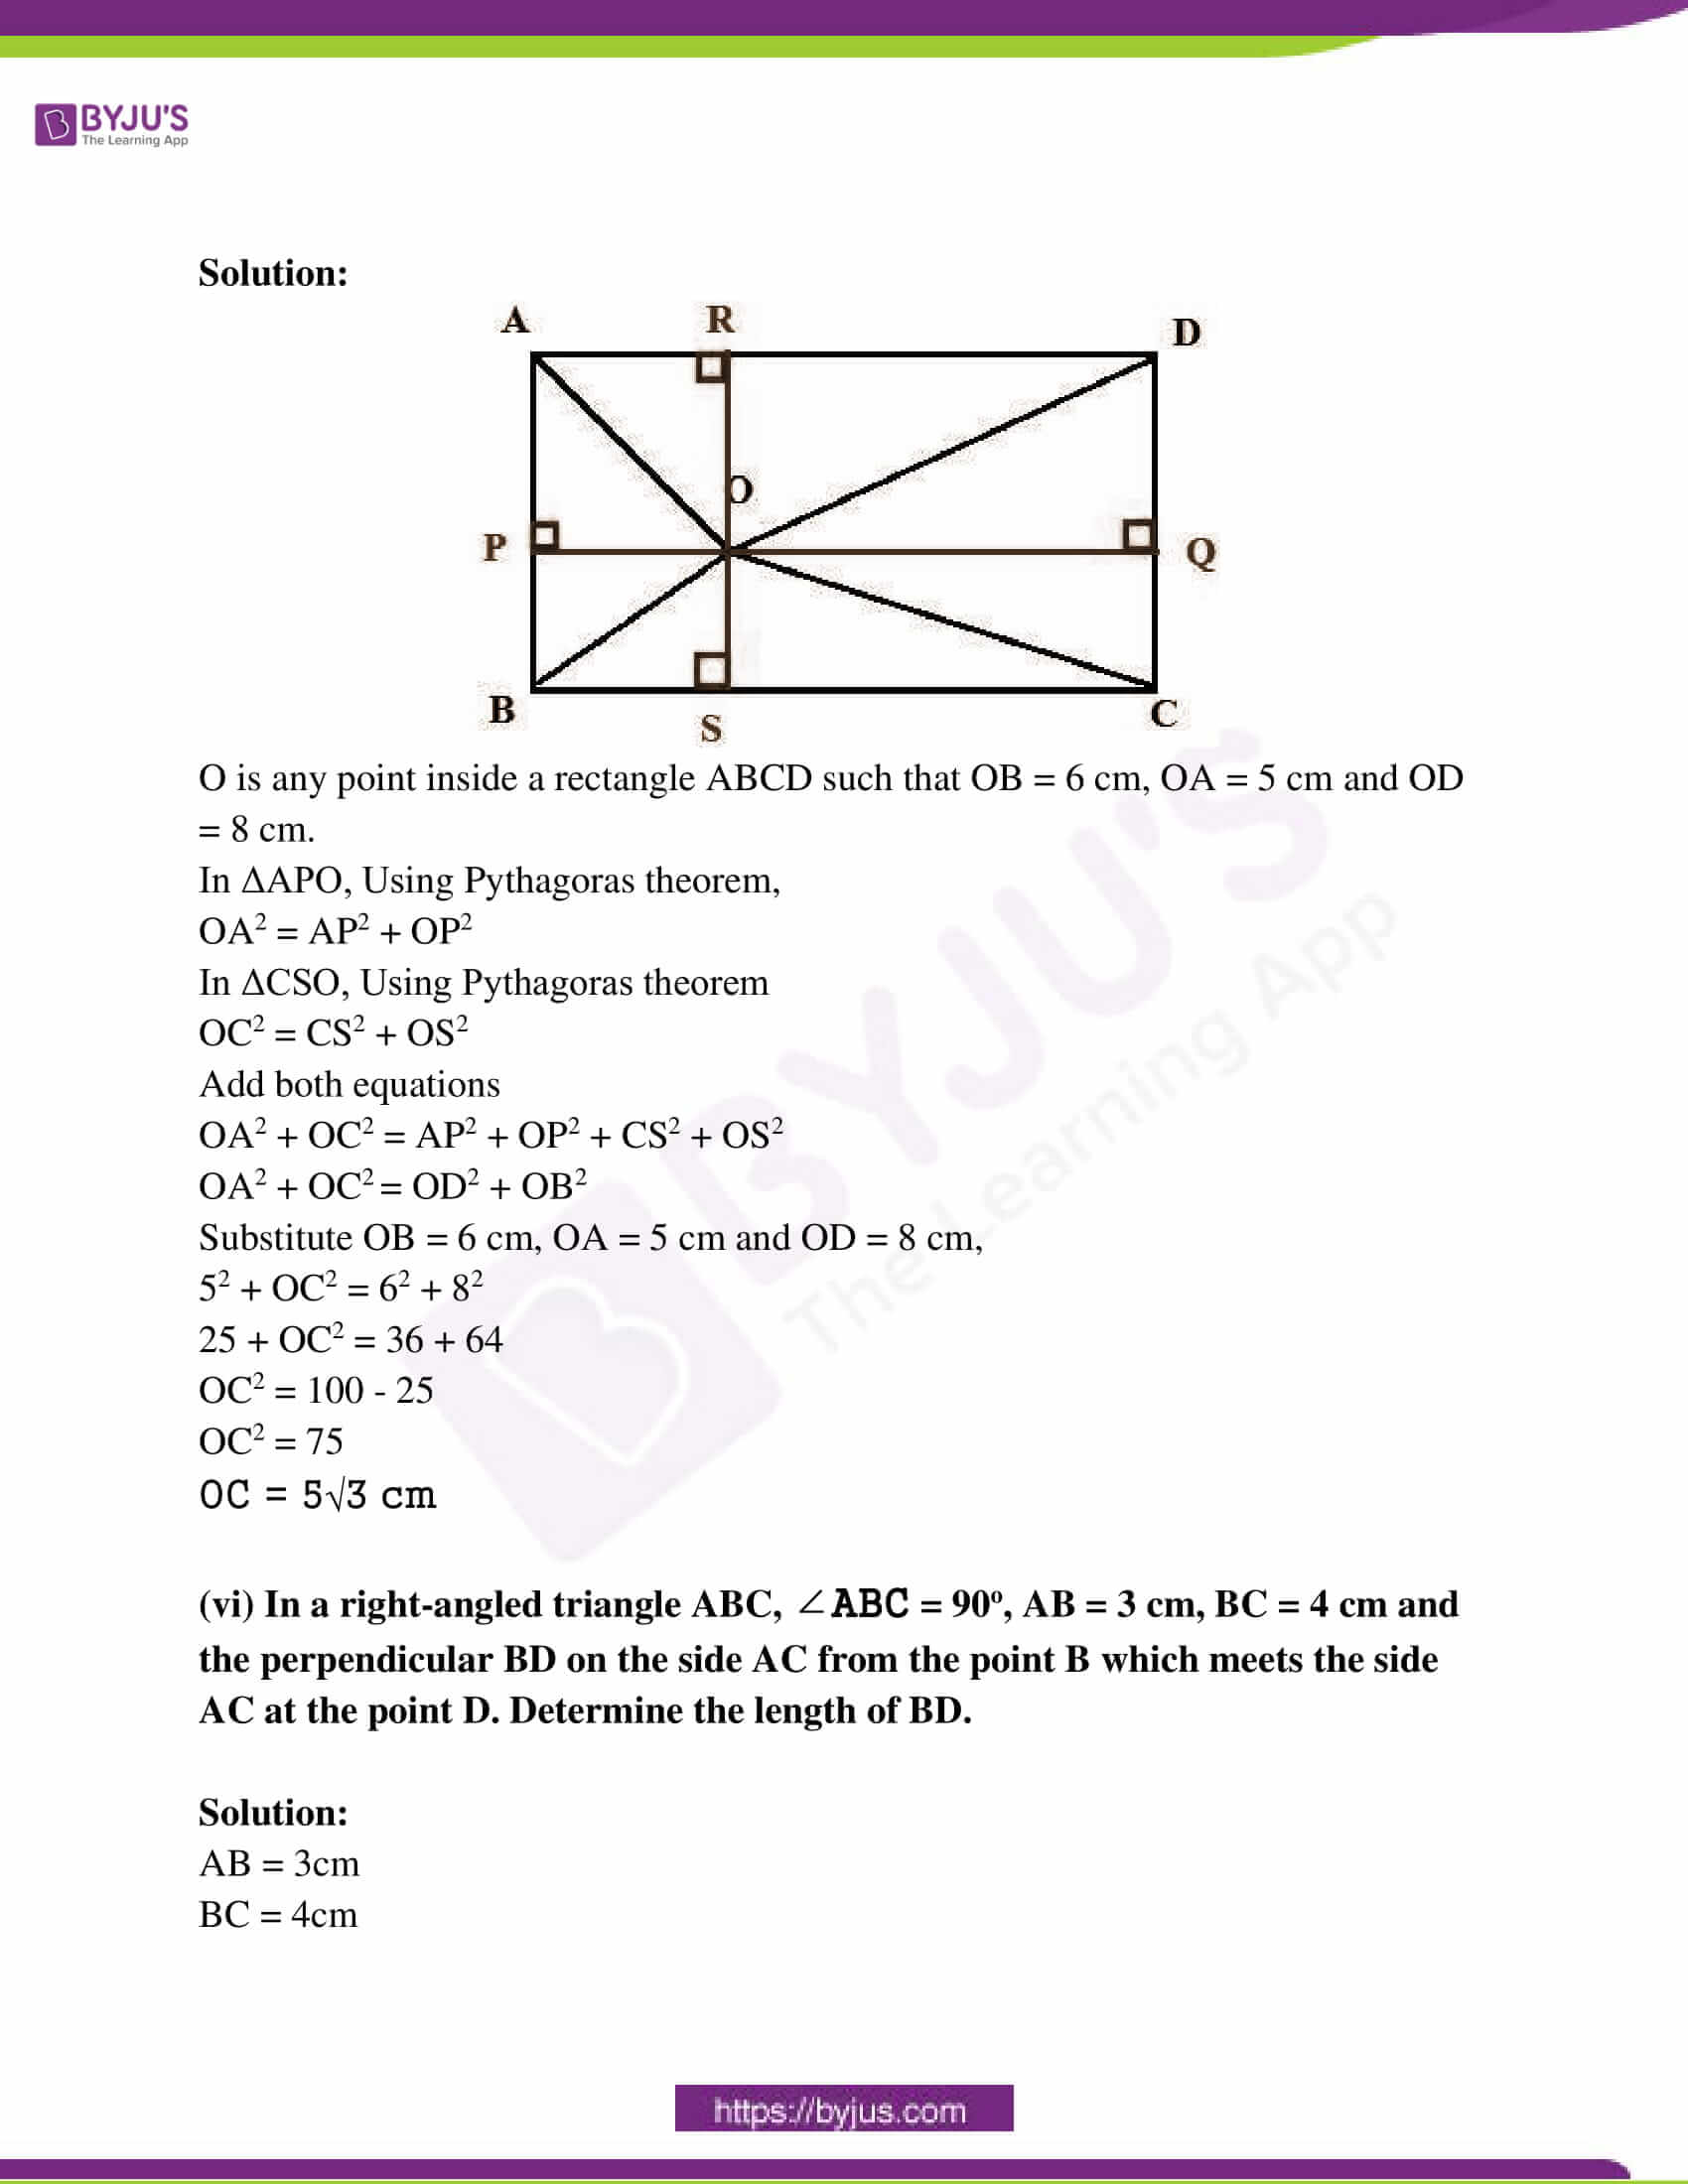 west bengal class 10 exam question paper solutions march 2020 07